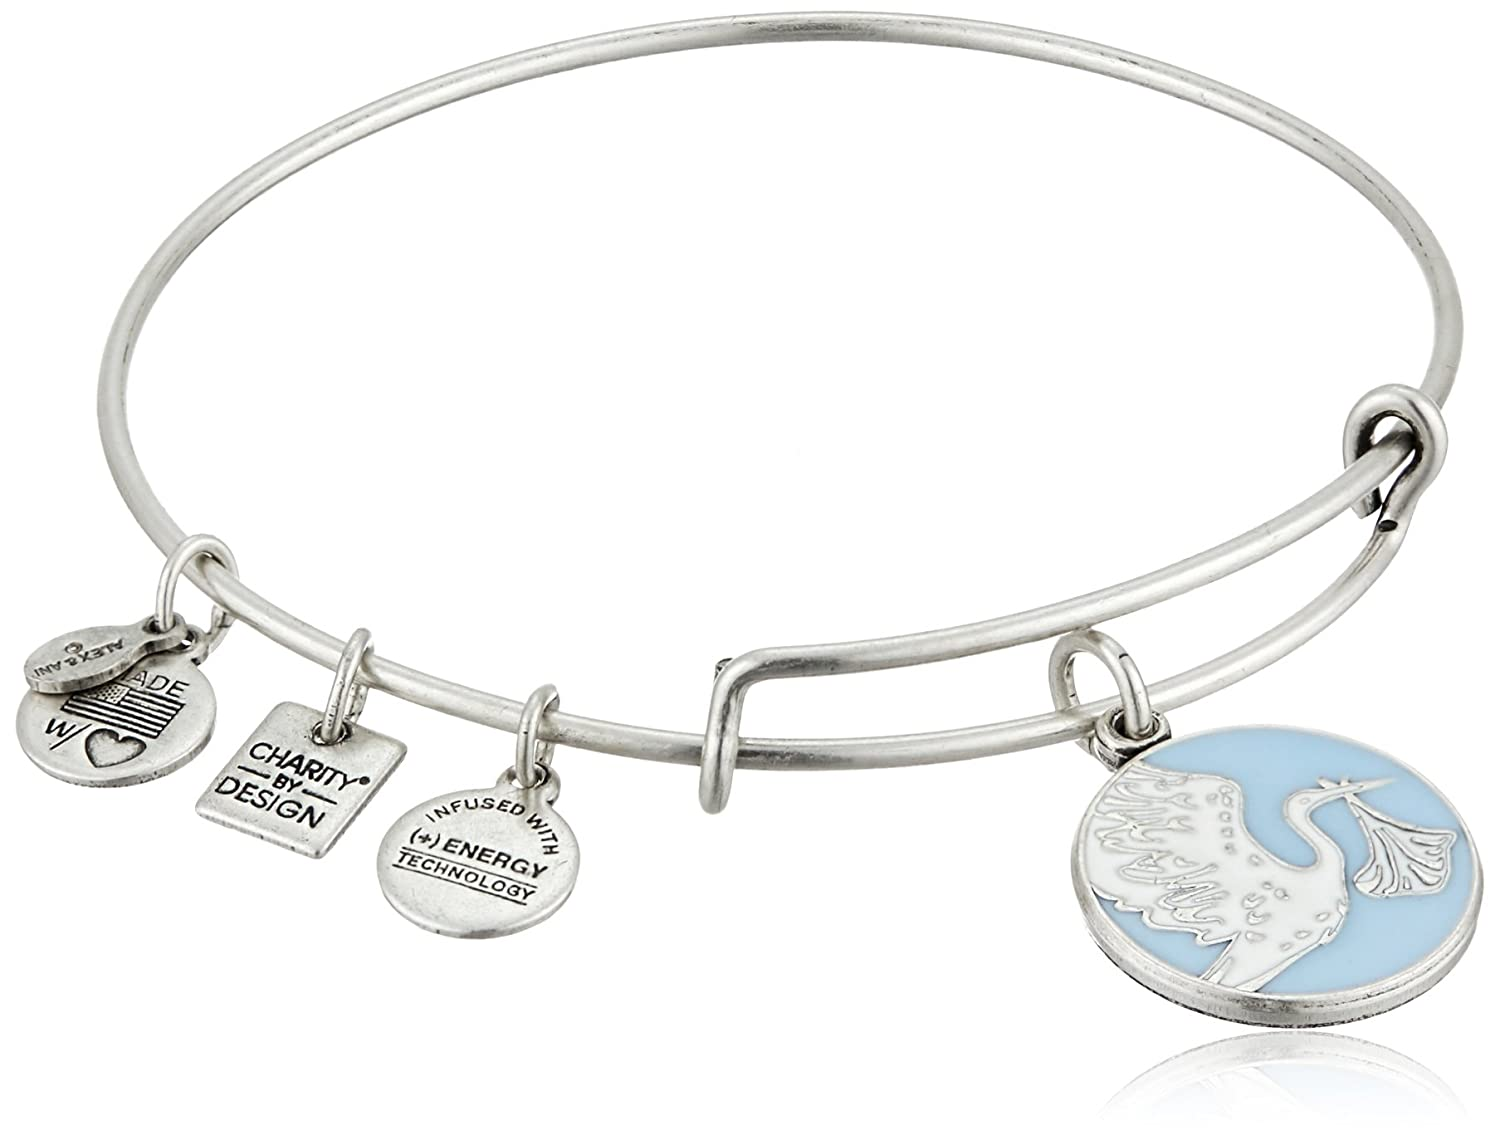 Alex Ani Charity Design Delivery Image 1